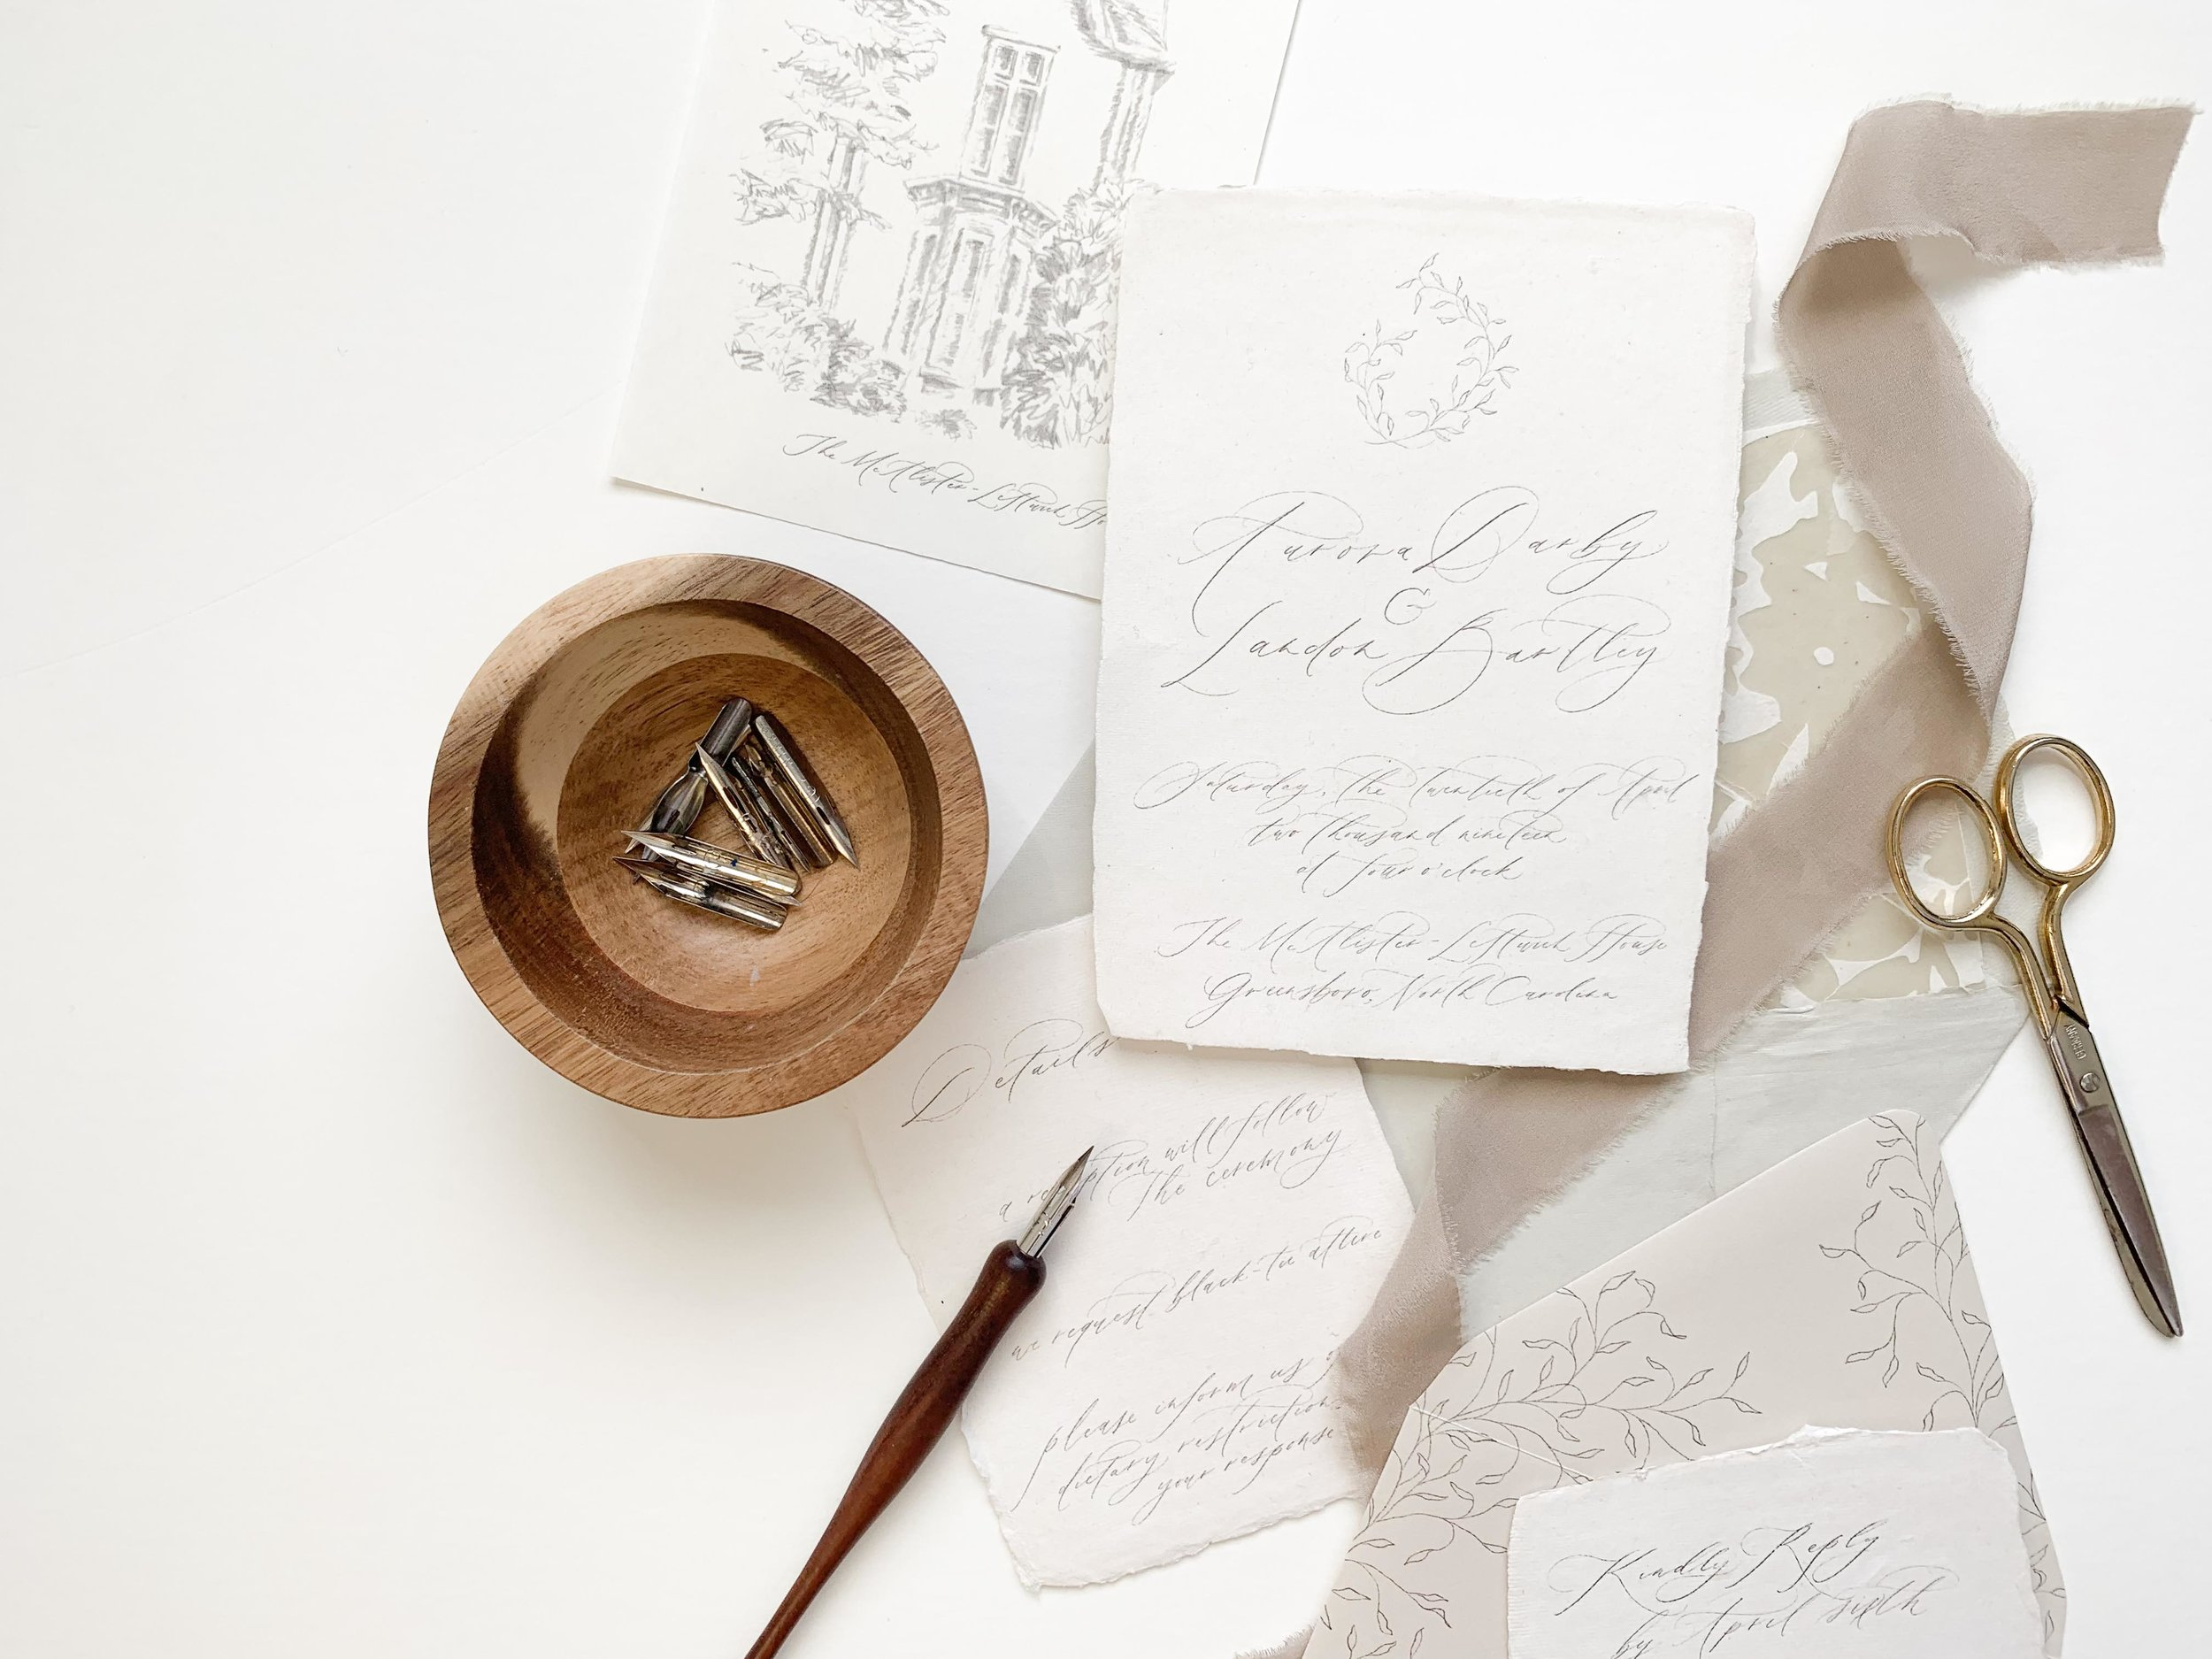 How to photograph and edit wedding invitations. Flat lay tips and tricks for wedding photographers, planners, and stationers.